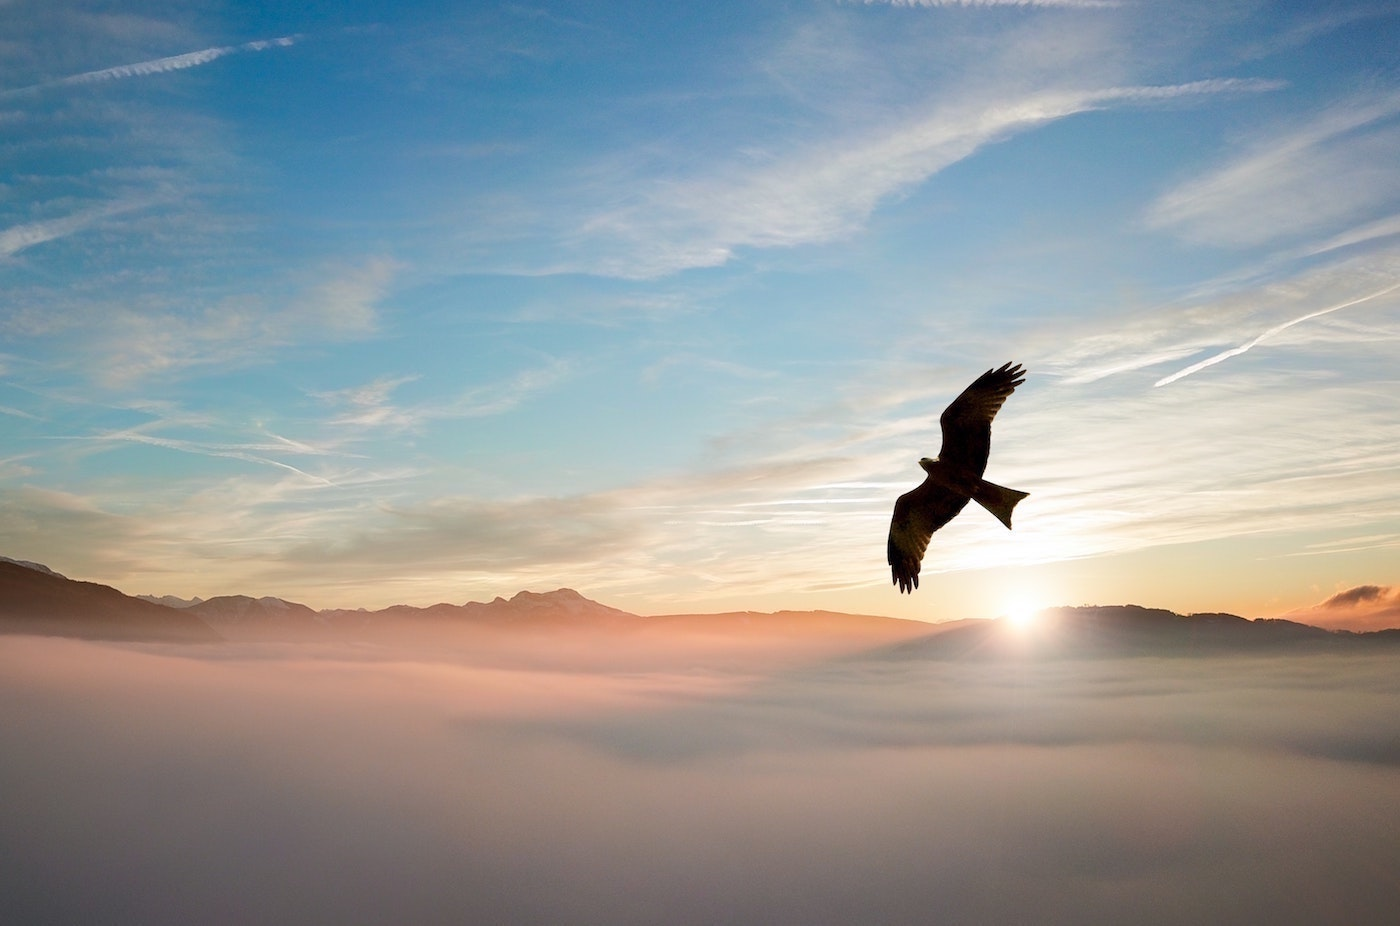 Goal Setting Part 2: How The Image Of An Eagle Helps Me Being Better Organized